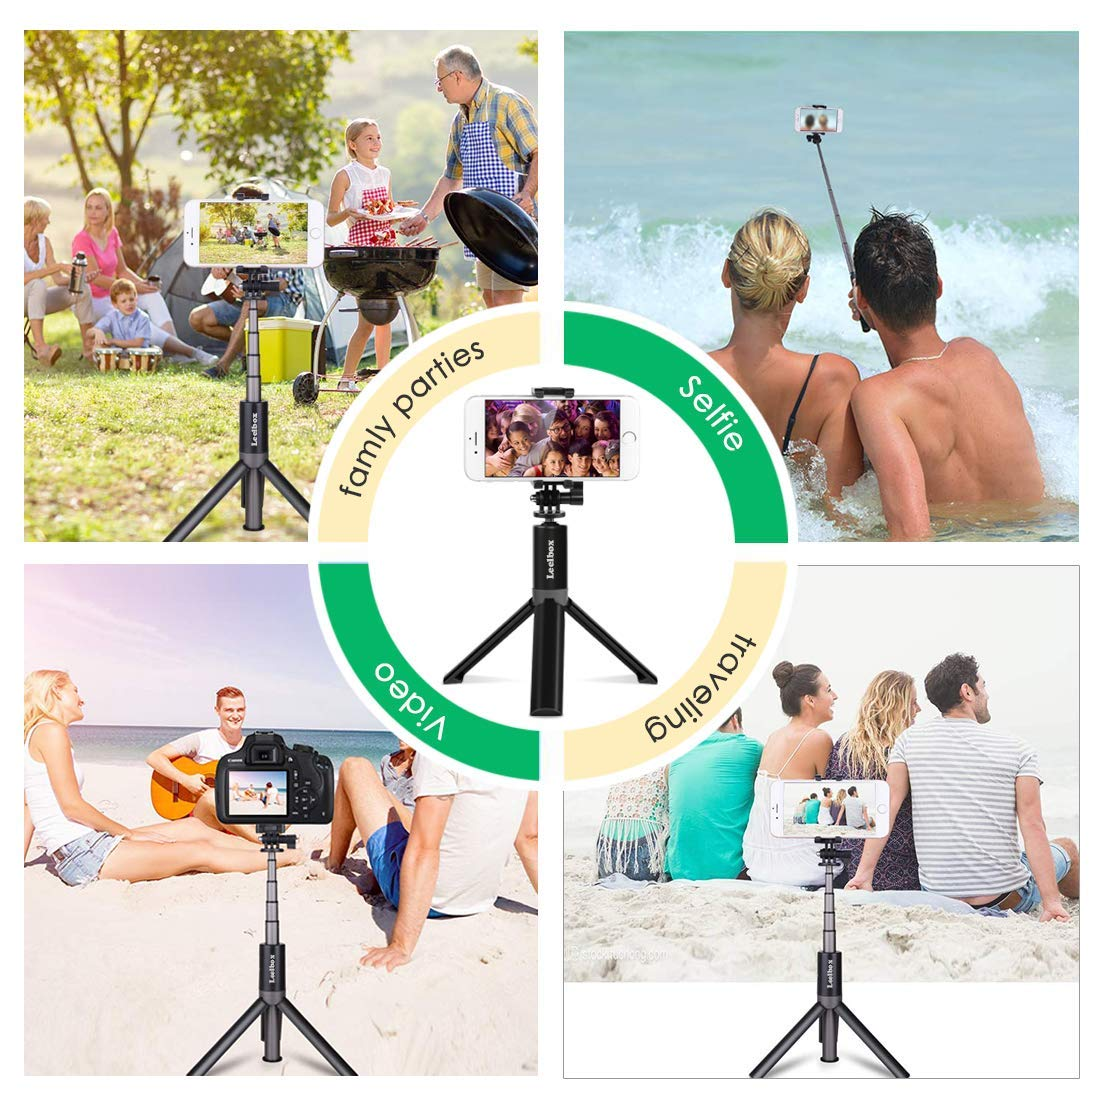 Bluetooth Selfie Stick Tripod Remote Extendable Monopod Shutter For iPhone Android Phone Gopro 5